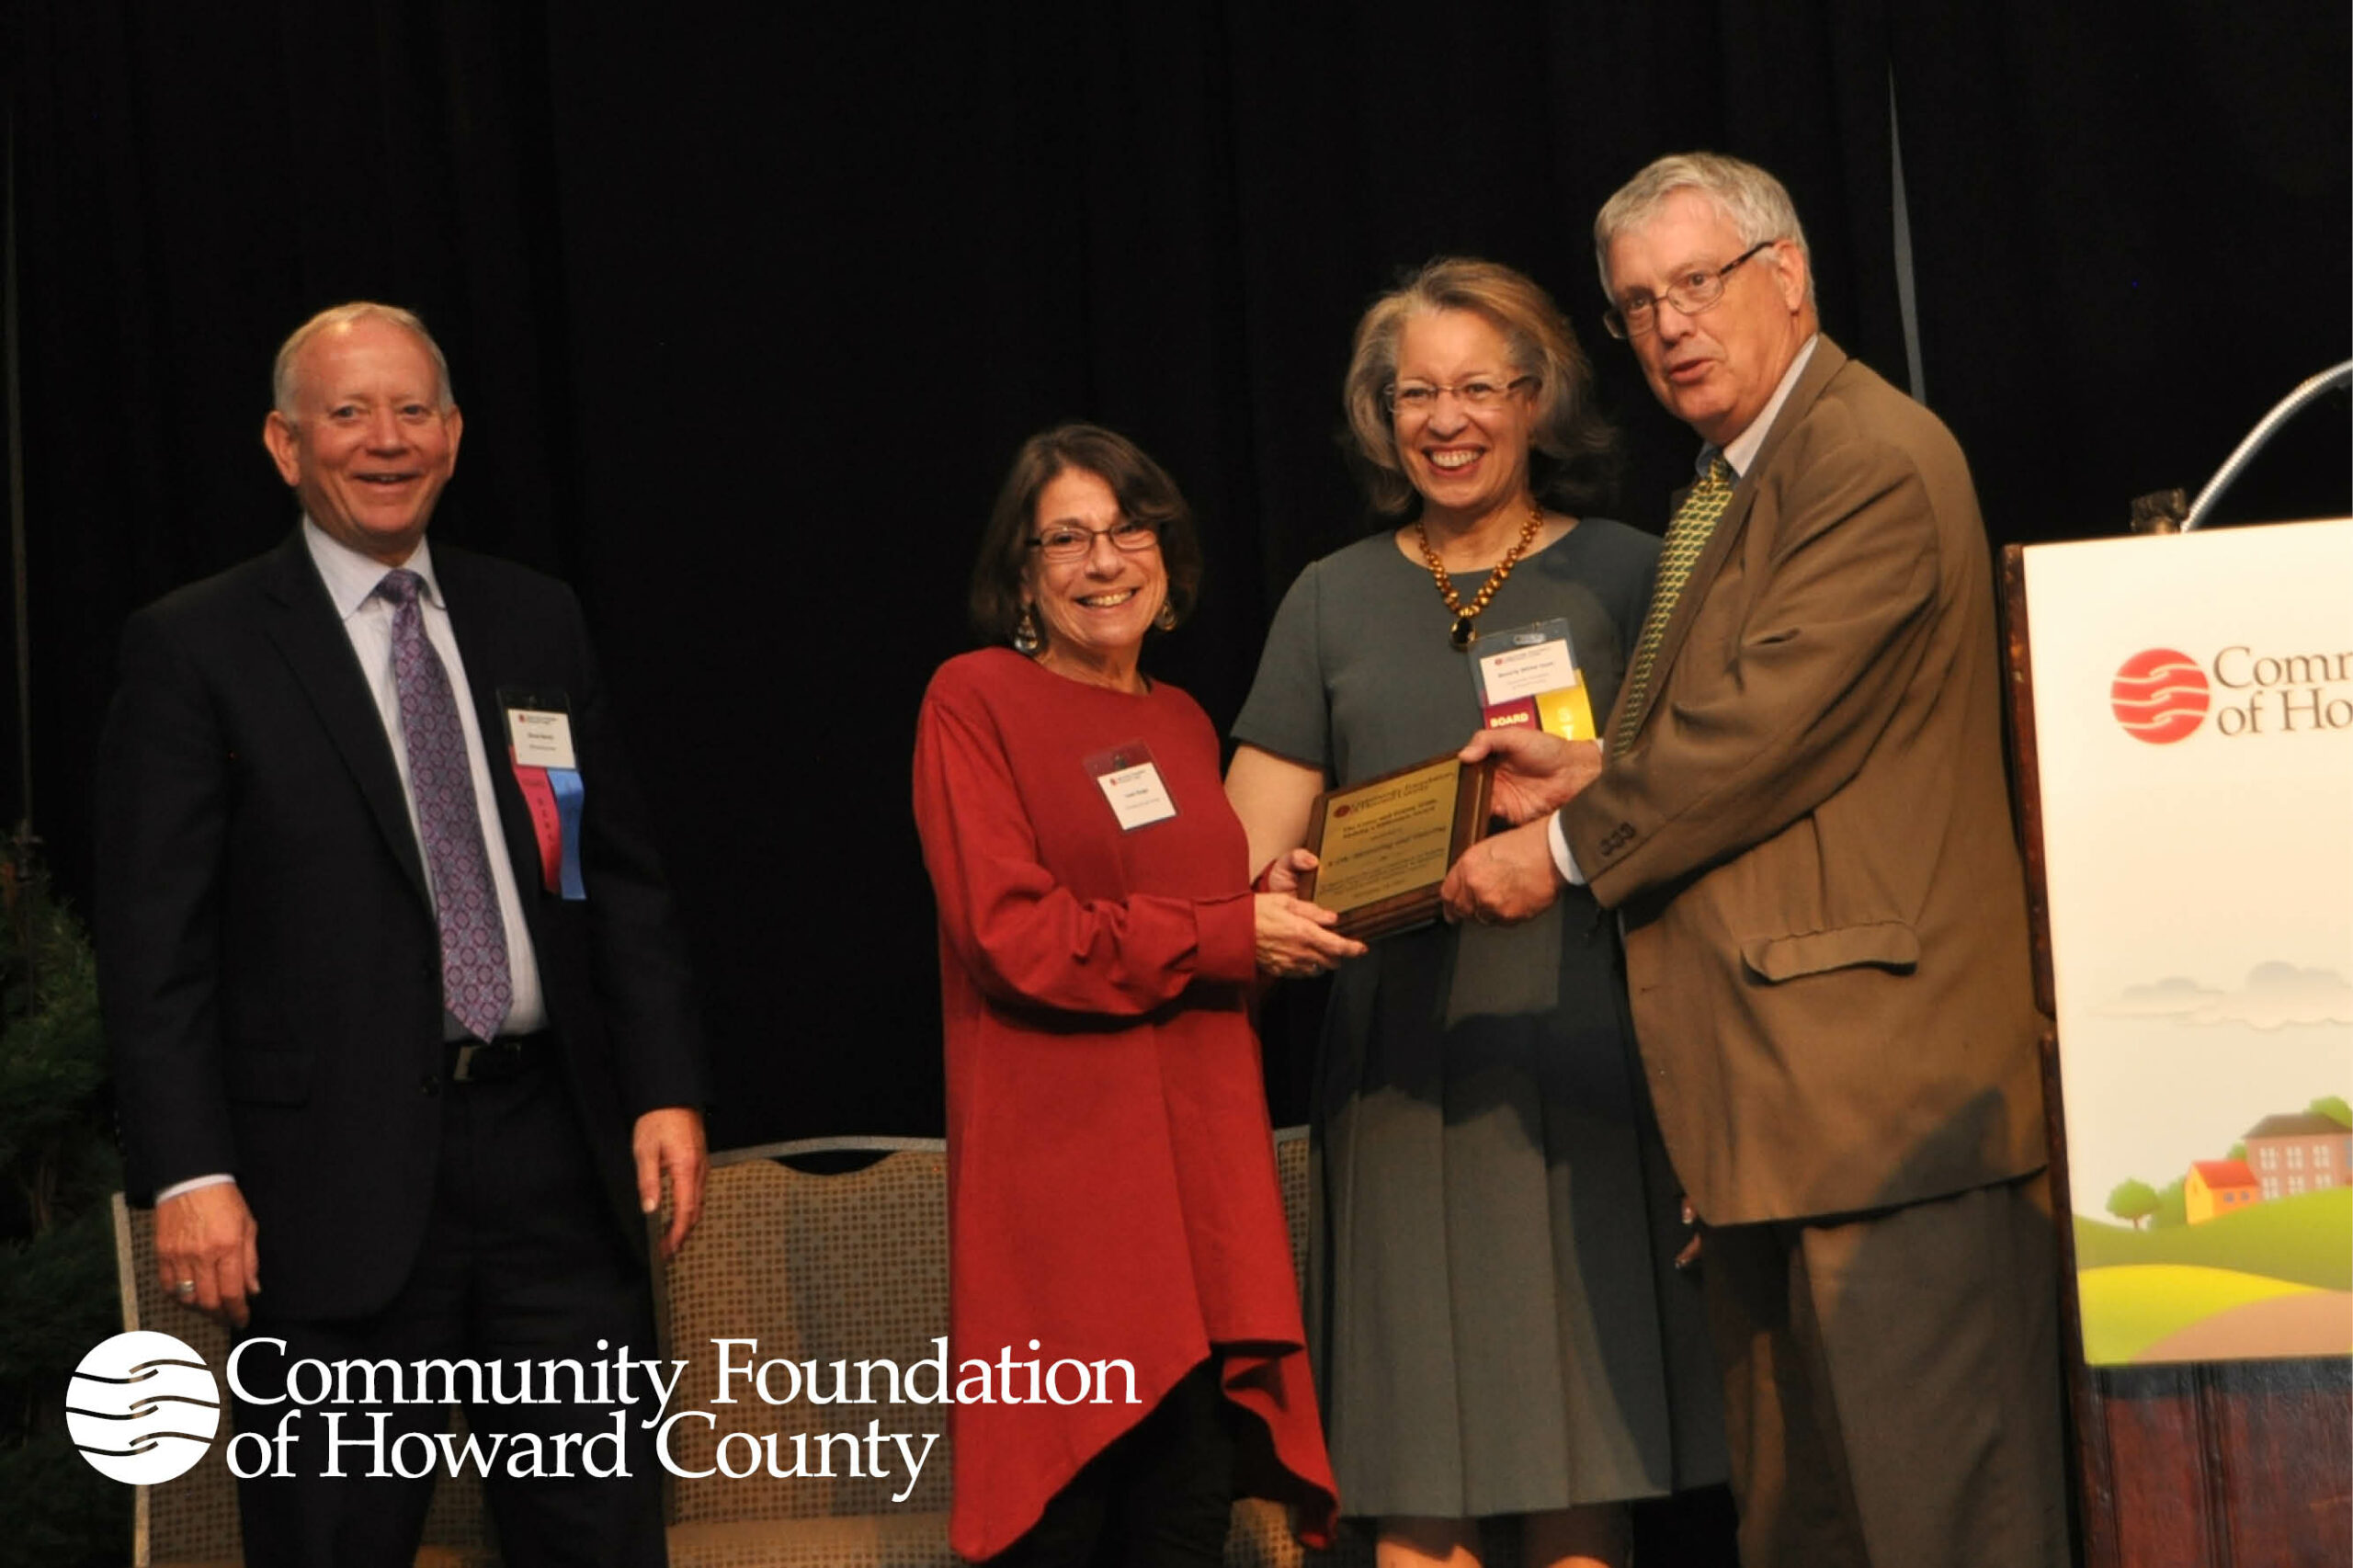 The Casey and Pebble Willis Making a Difference Award